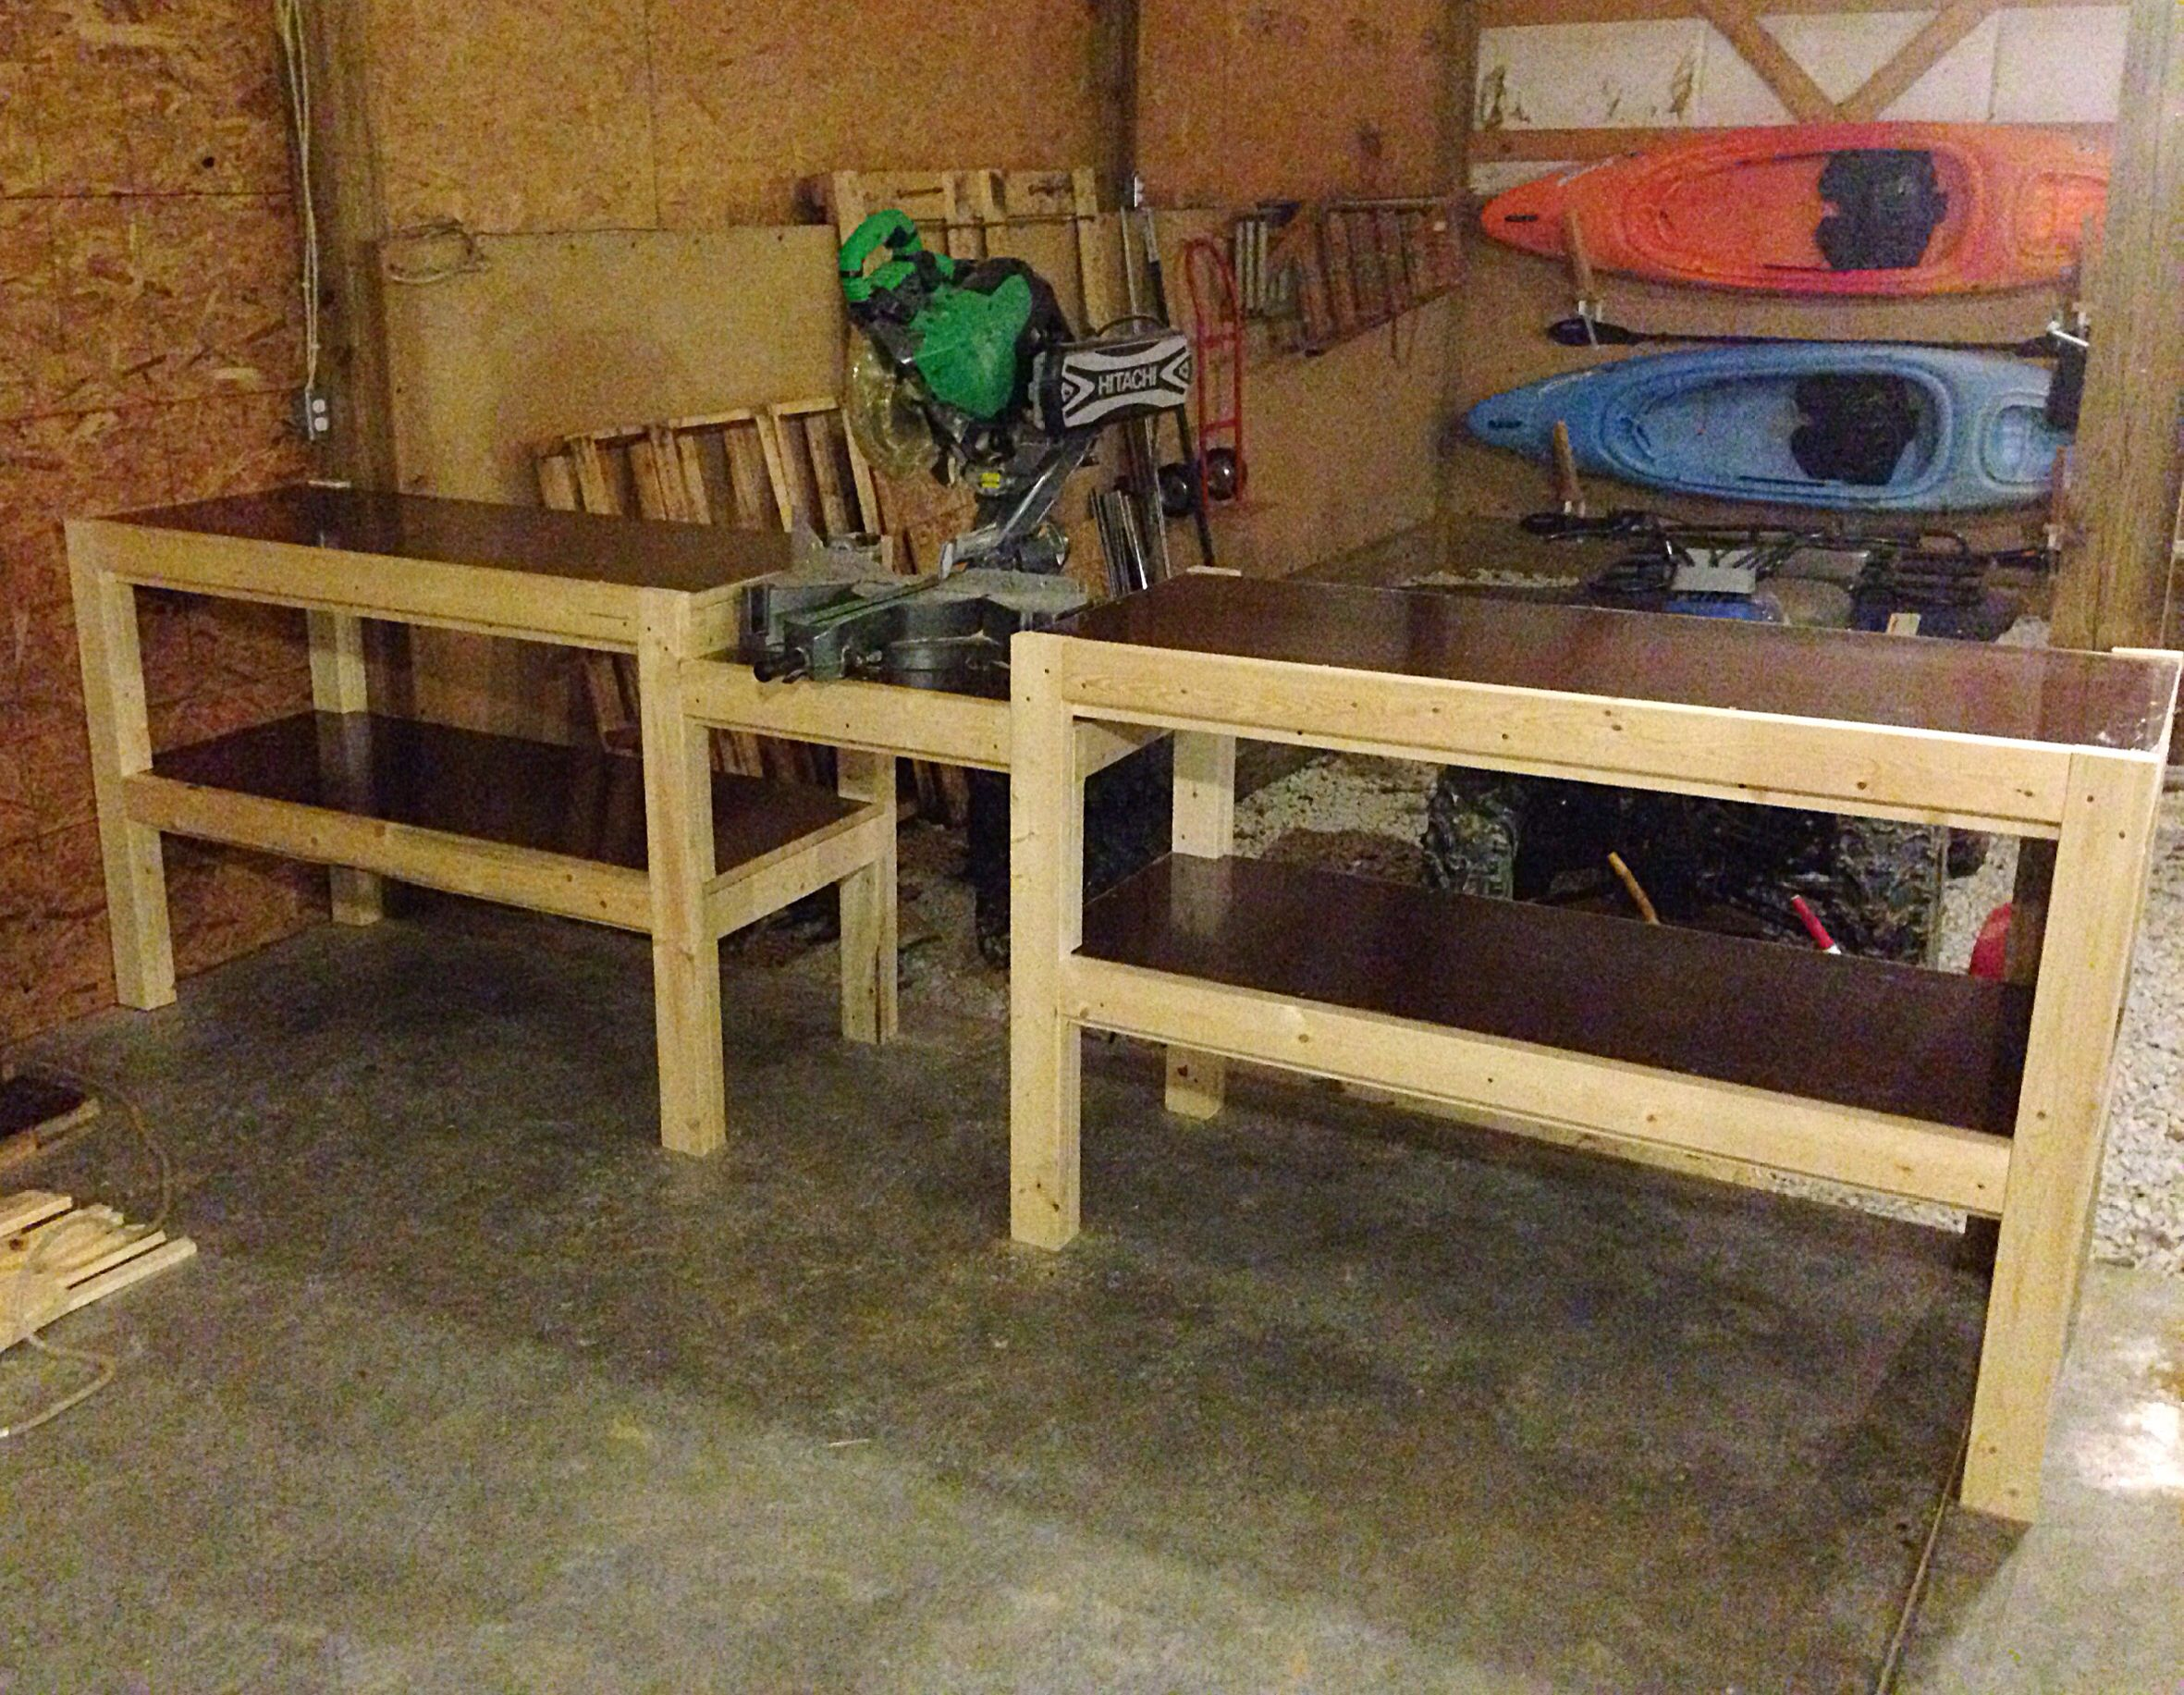 Woodworking Table Ideas Miter Saw Table Completed Projects Miter Saw Table